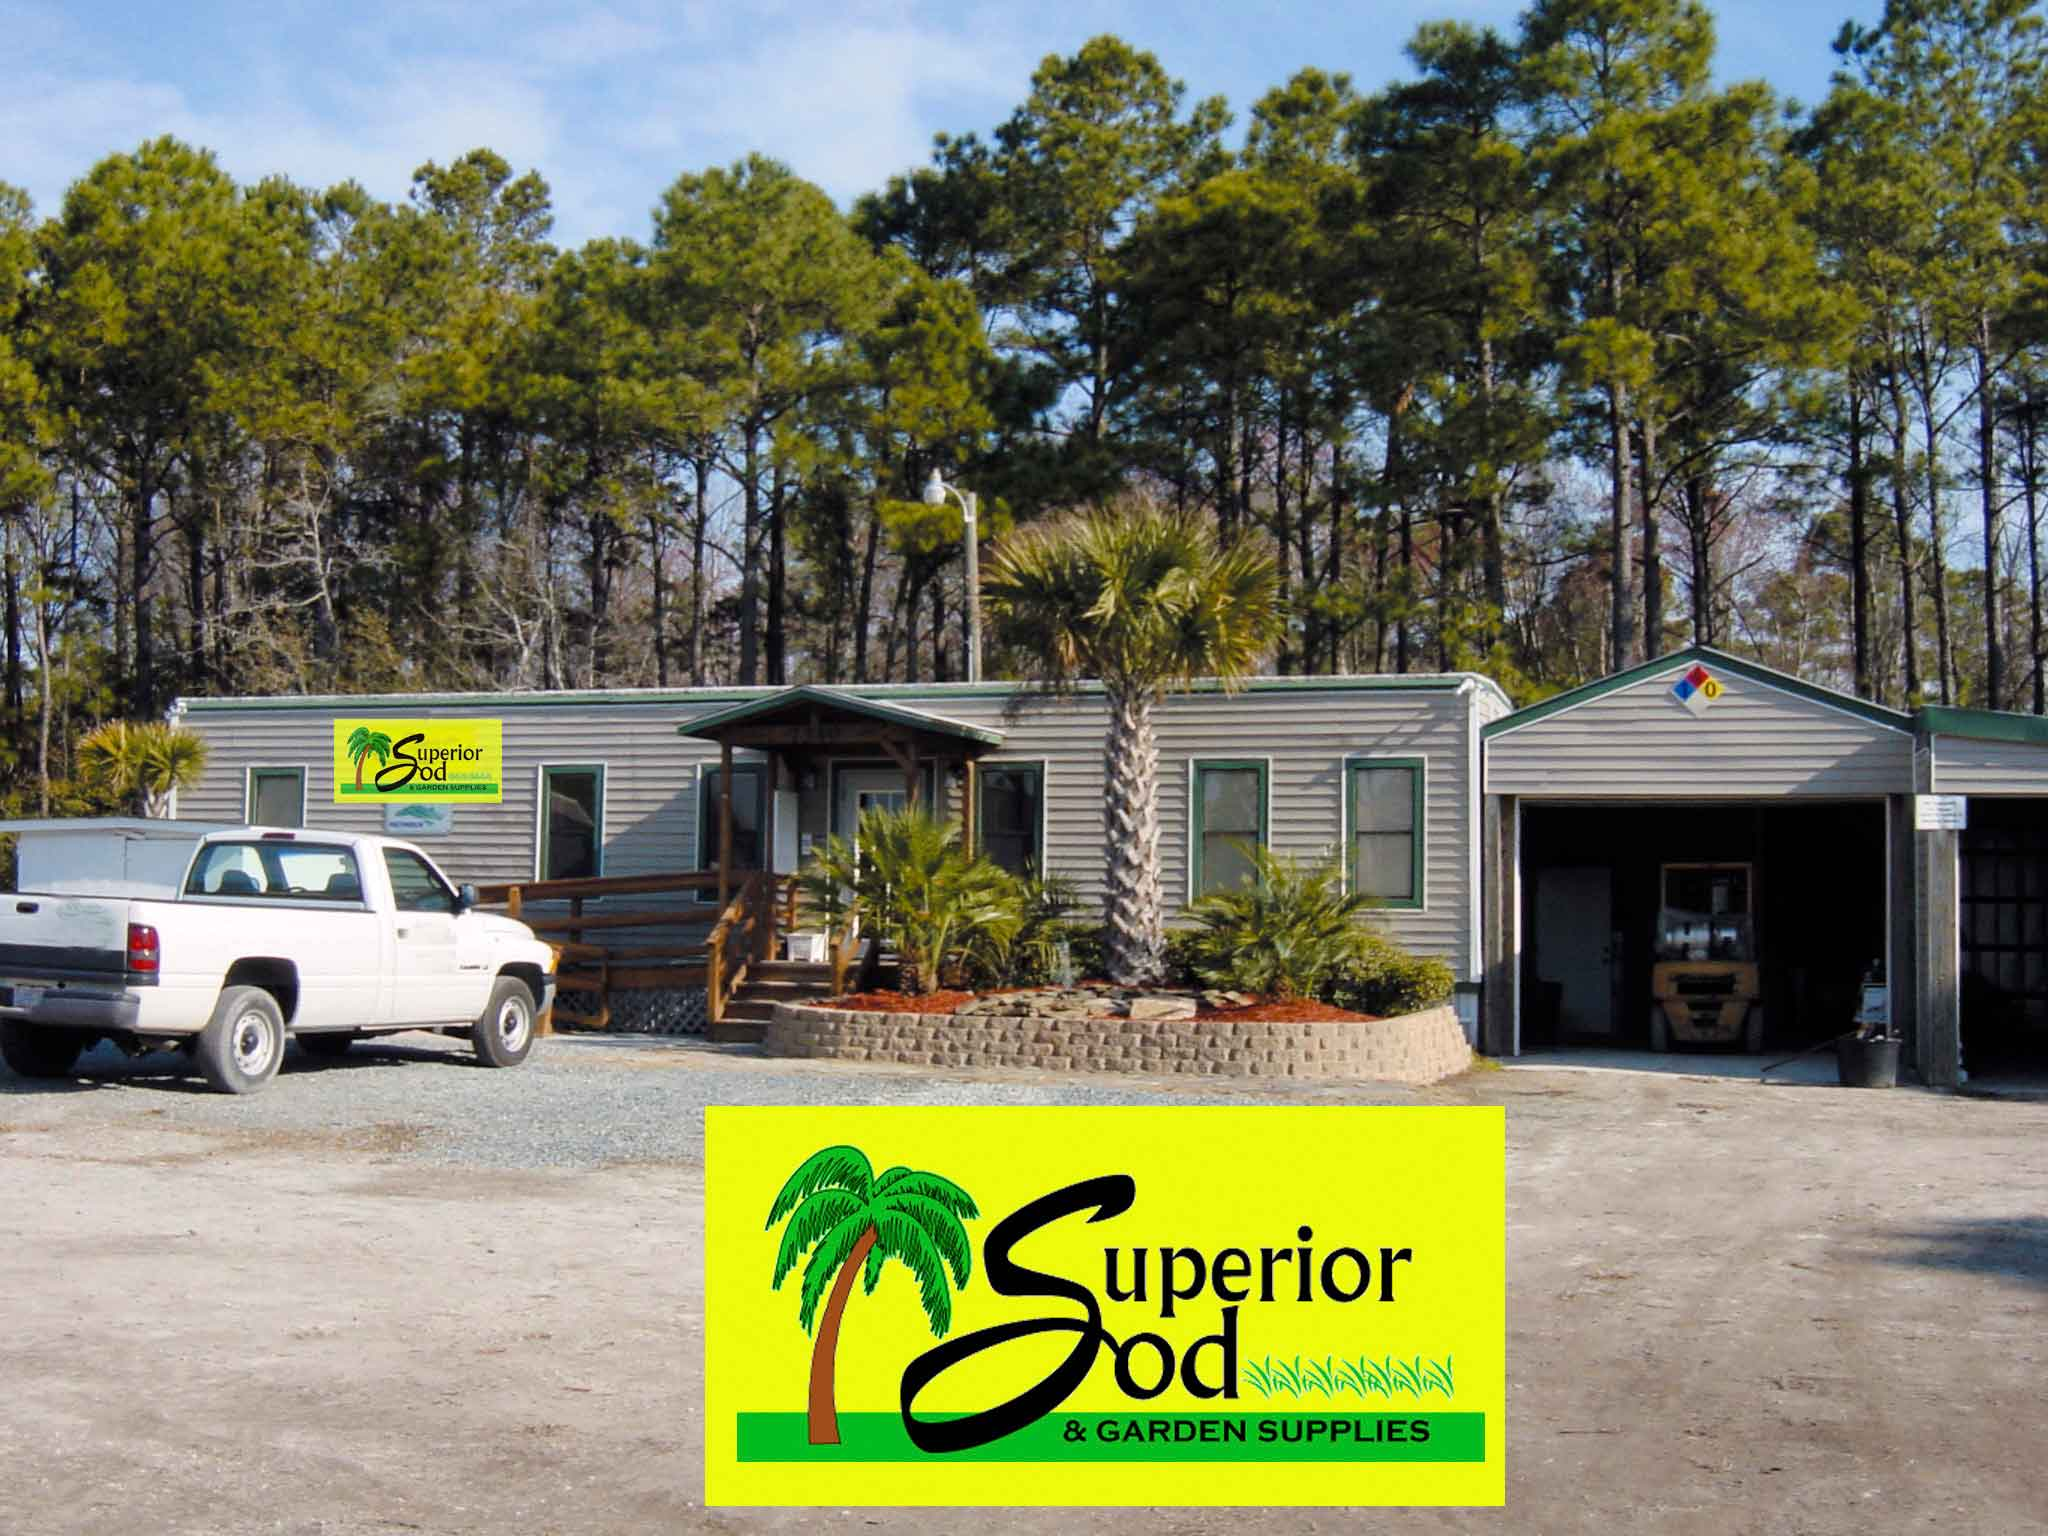 The best place to buy sod in North Carolina